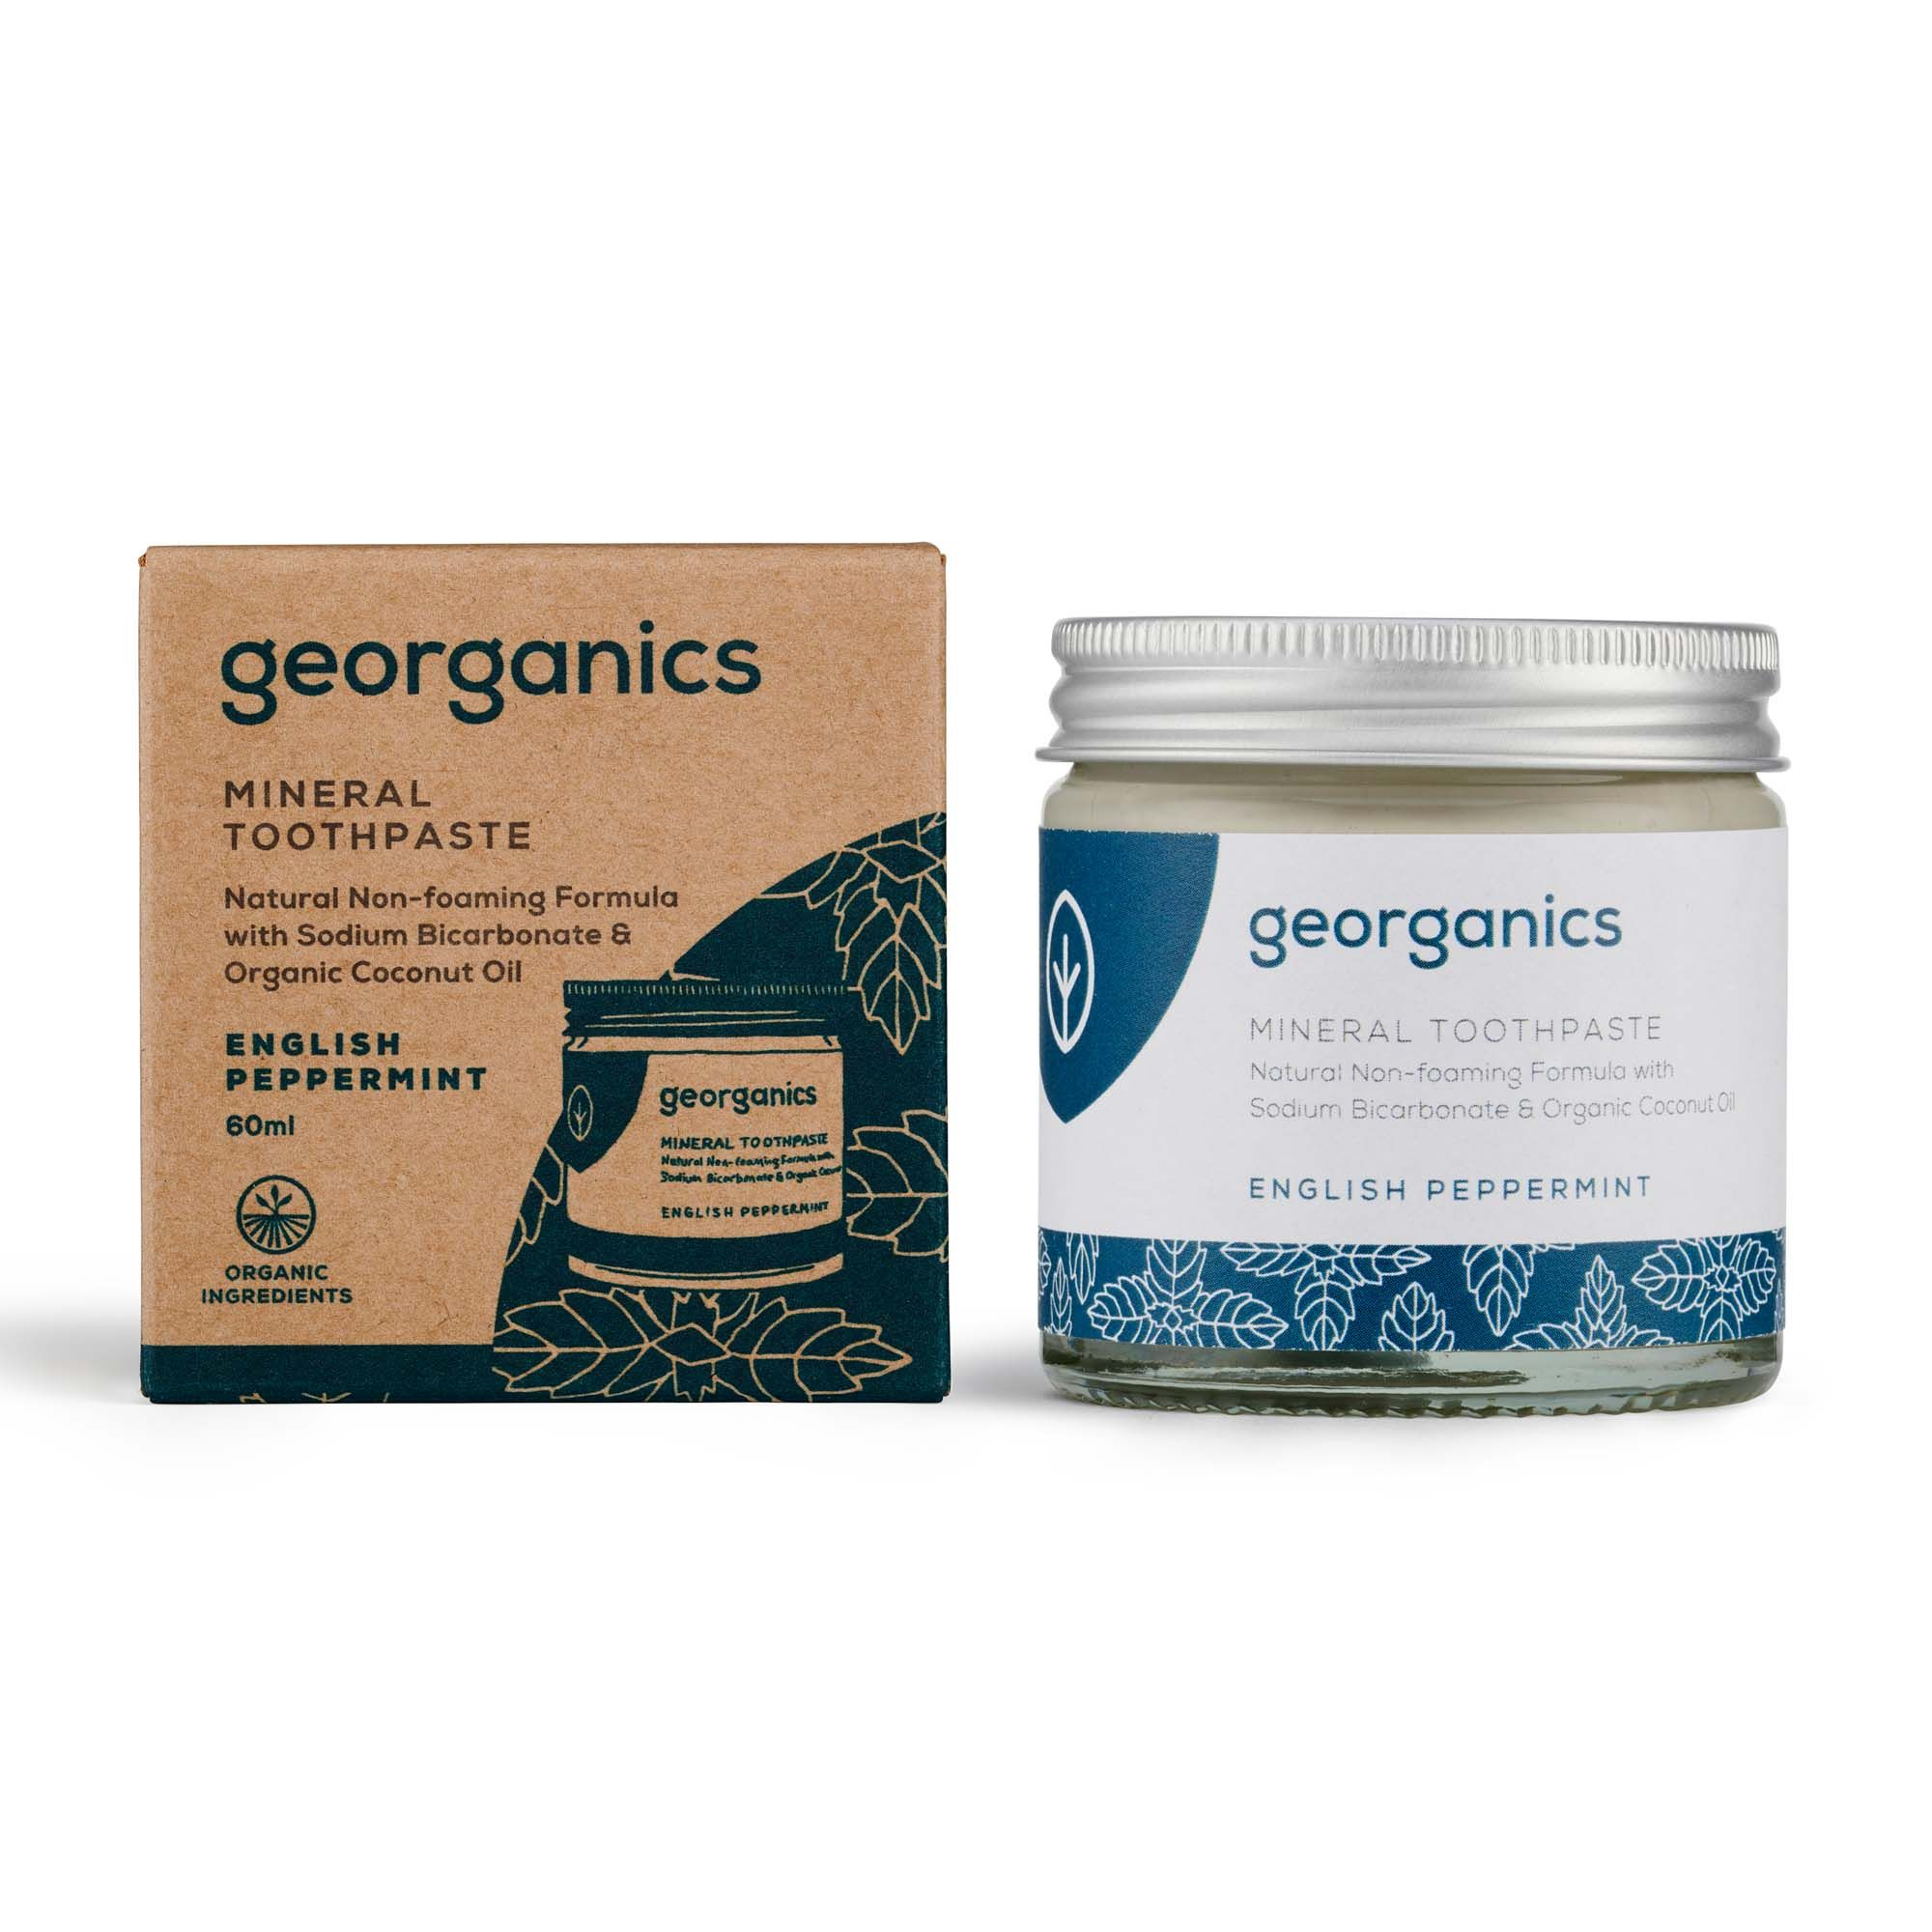 Georganics Mineral Toothpaste 60ml - Various Flavours